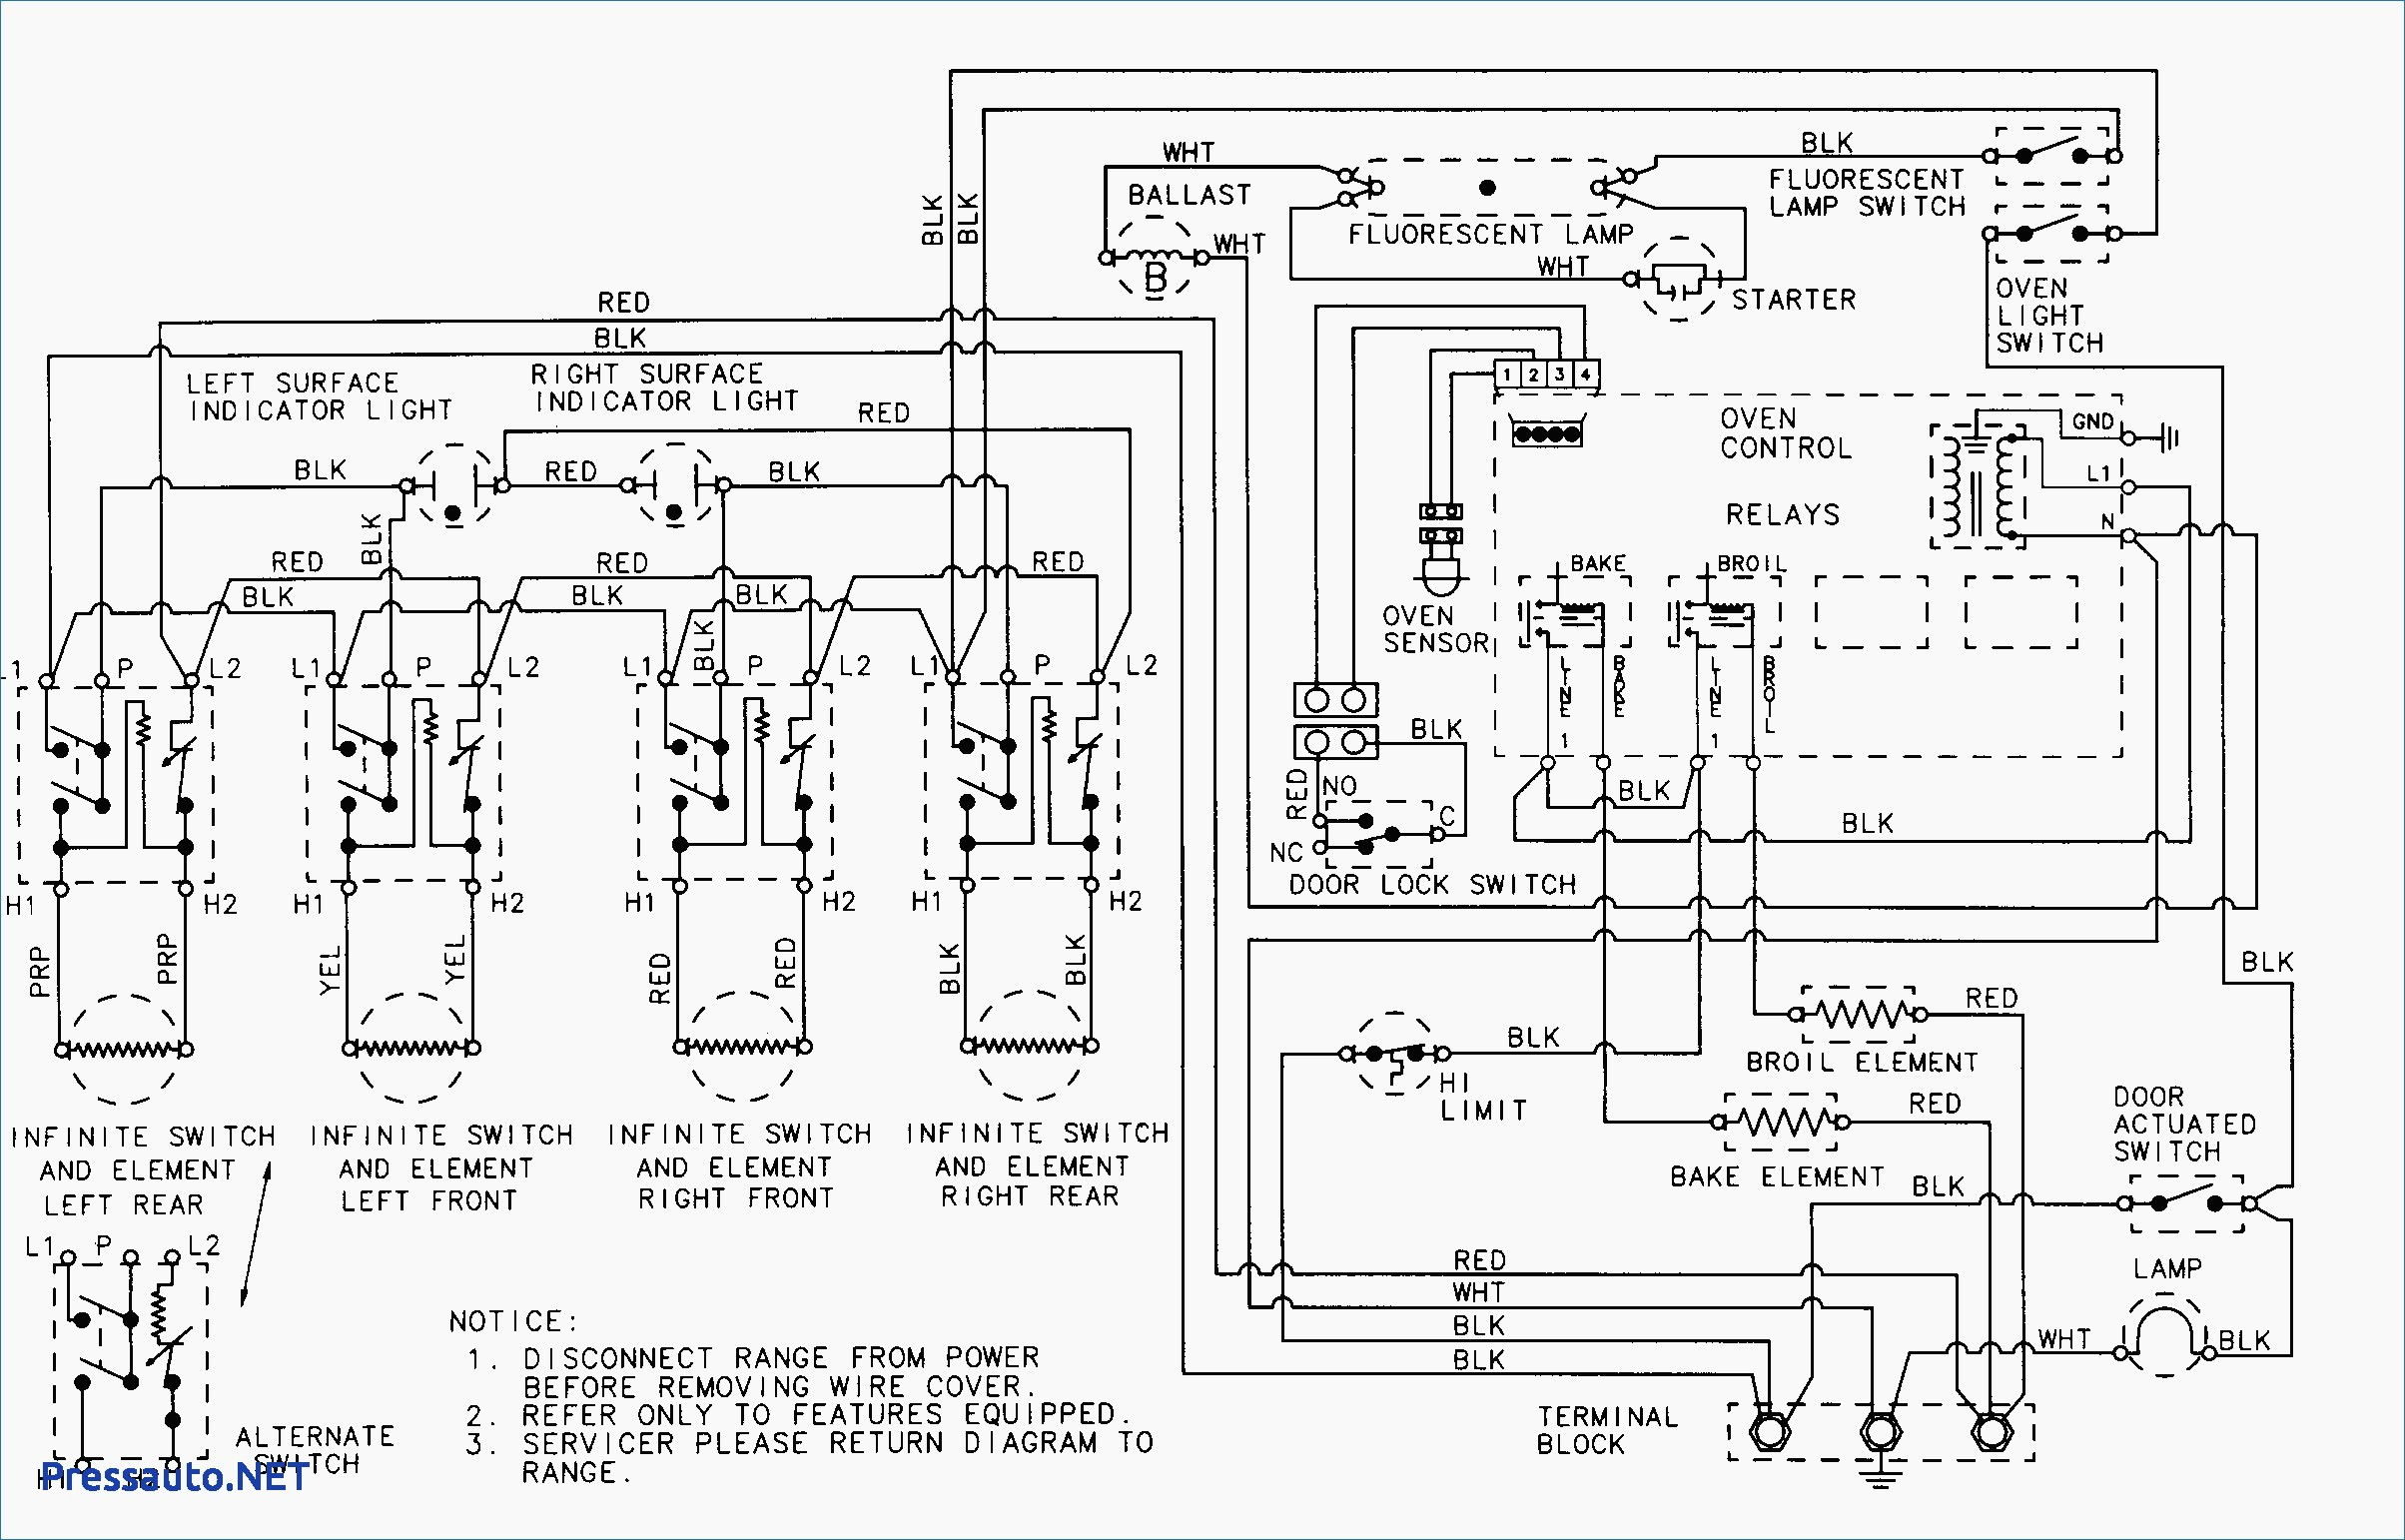 Ge Oven Wiring Diagram Wiring Diagram Ge Dryer Check Valve Applications at  Discrd Of Ge Oven